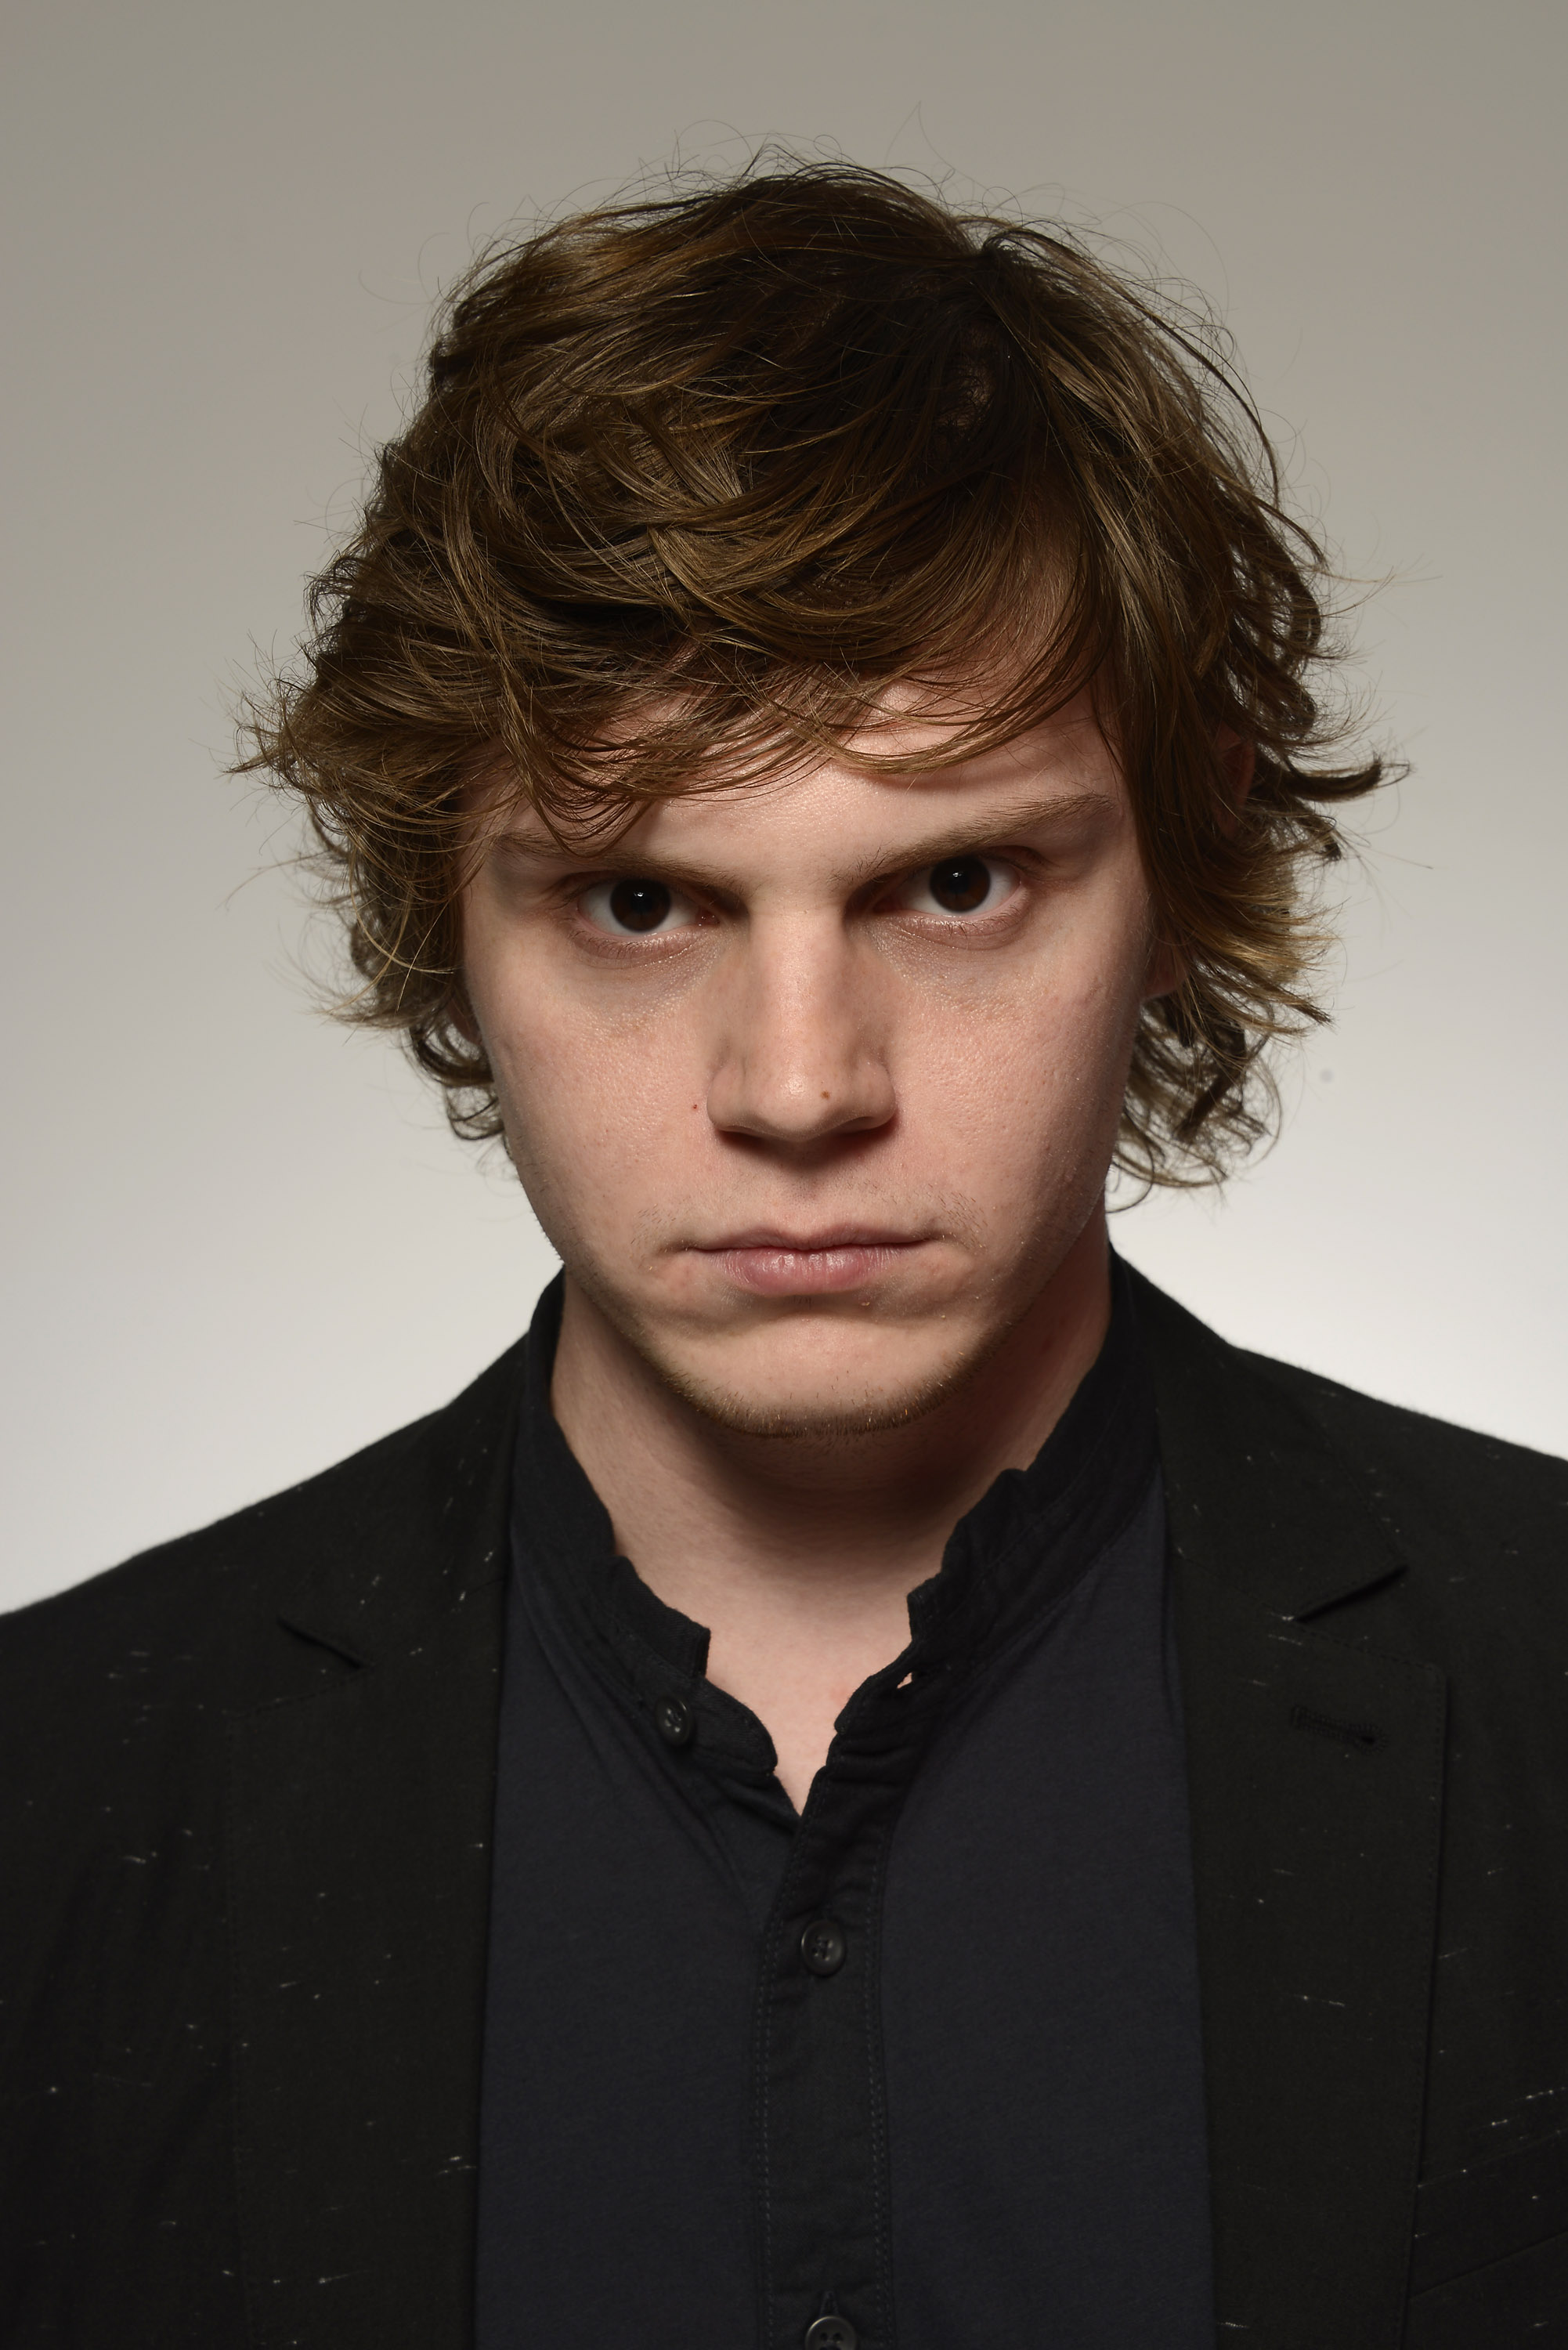 evan peters gifevan peters gif, evan peters emma roberts, evan peters vk, evan peters tumblr, evan peters – come as you are, evan peters height, evan peters личная жизнь, evan peters 2017, evan peters and taissa farmiga, evan peters twitter, evan peters smile, evan peters png, evan peters interview, evan peters biography, evan peters and emma roberts 2017, evan peters gif hunt, evan peters films, evan peters photoshoots, evan peters the laterals, evan peters natal chart